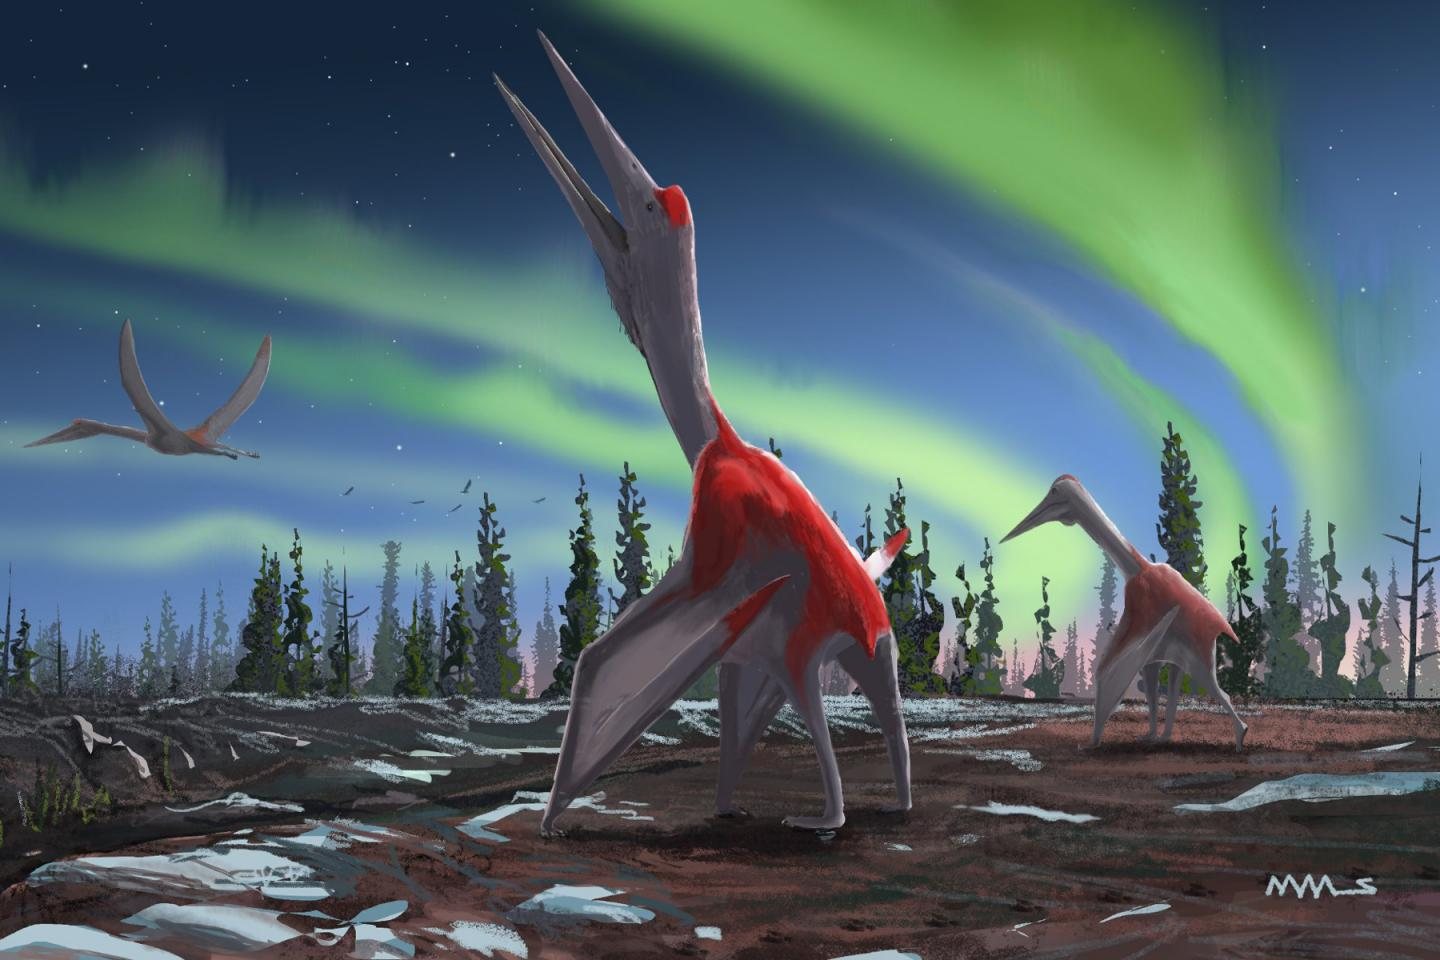 Pterosaur may have been world's largest flying animal